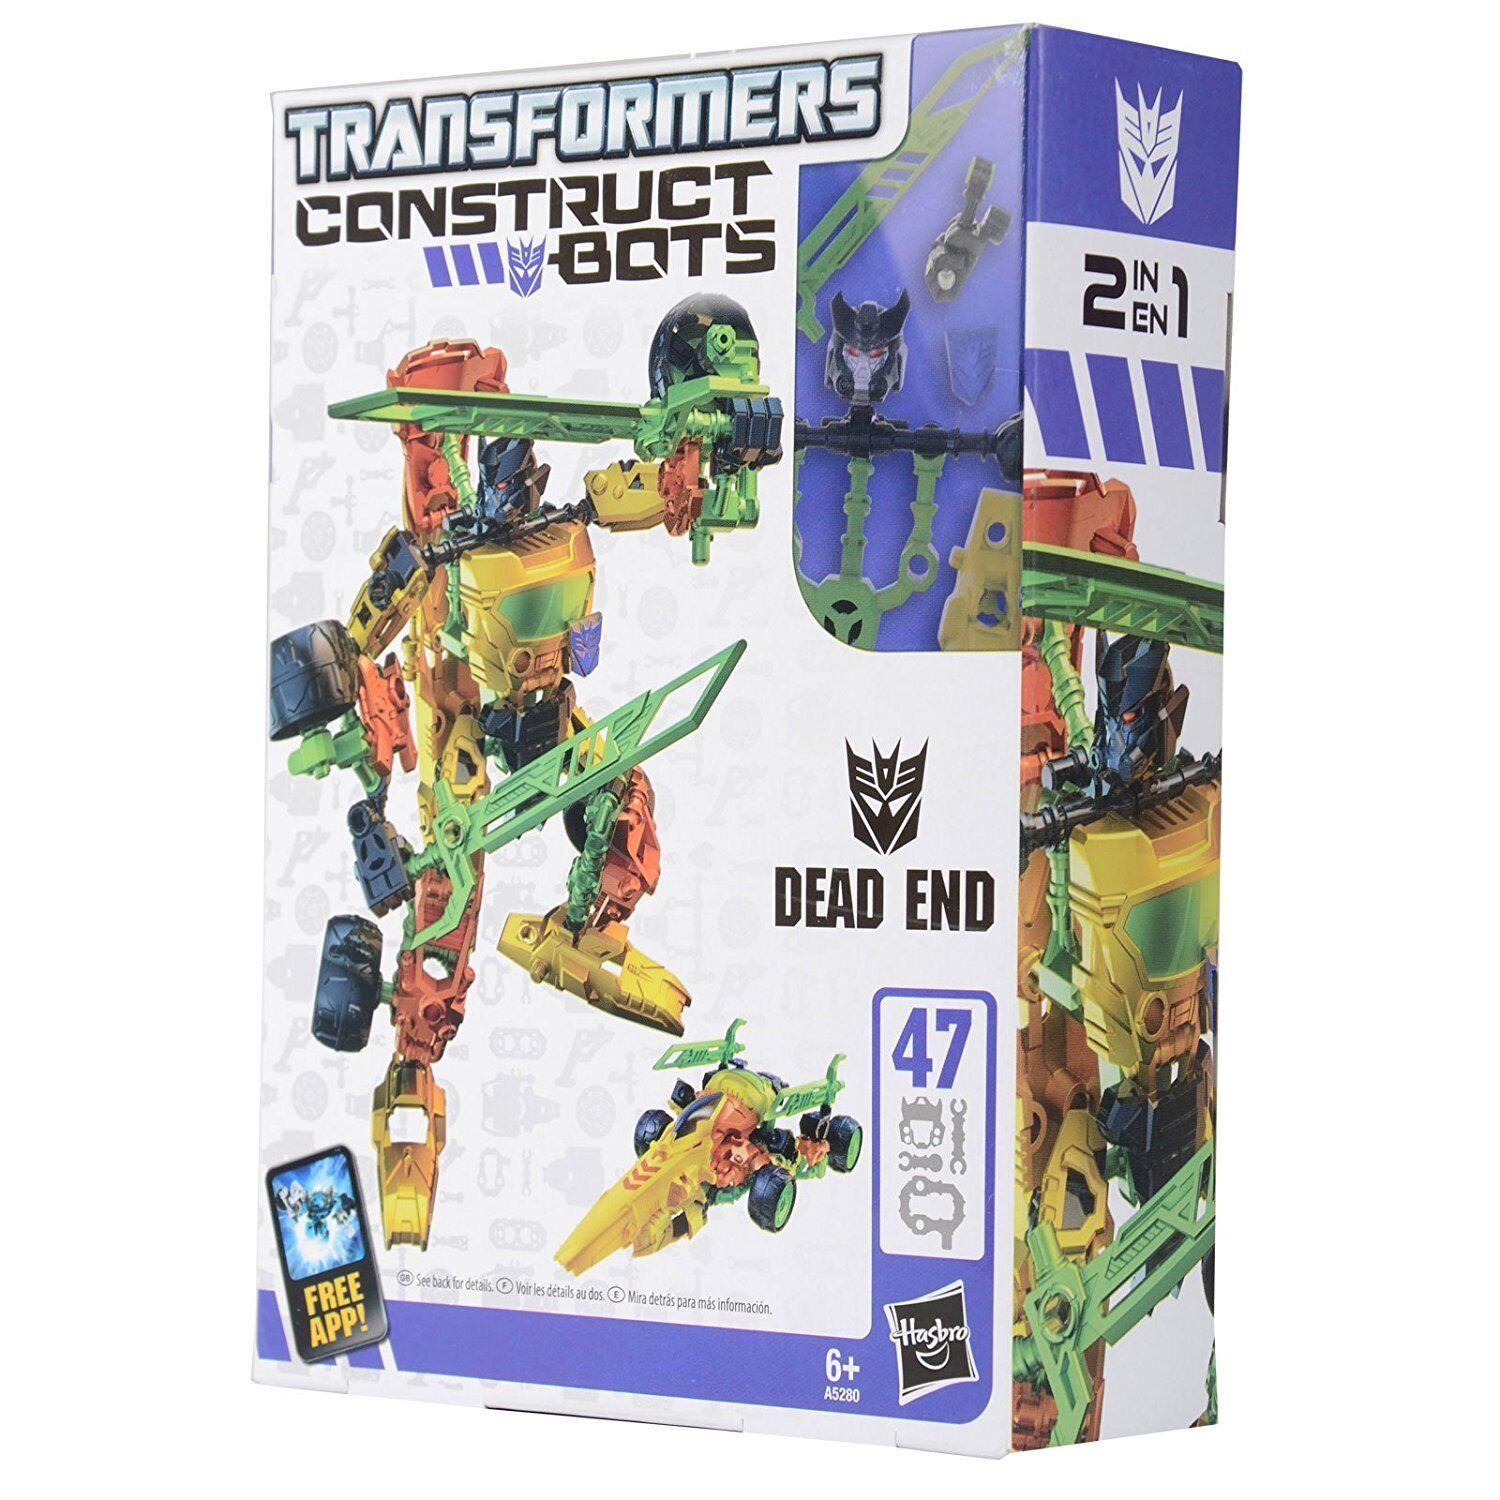 Transformers Construct Bots 2 In 1 Dead End